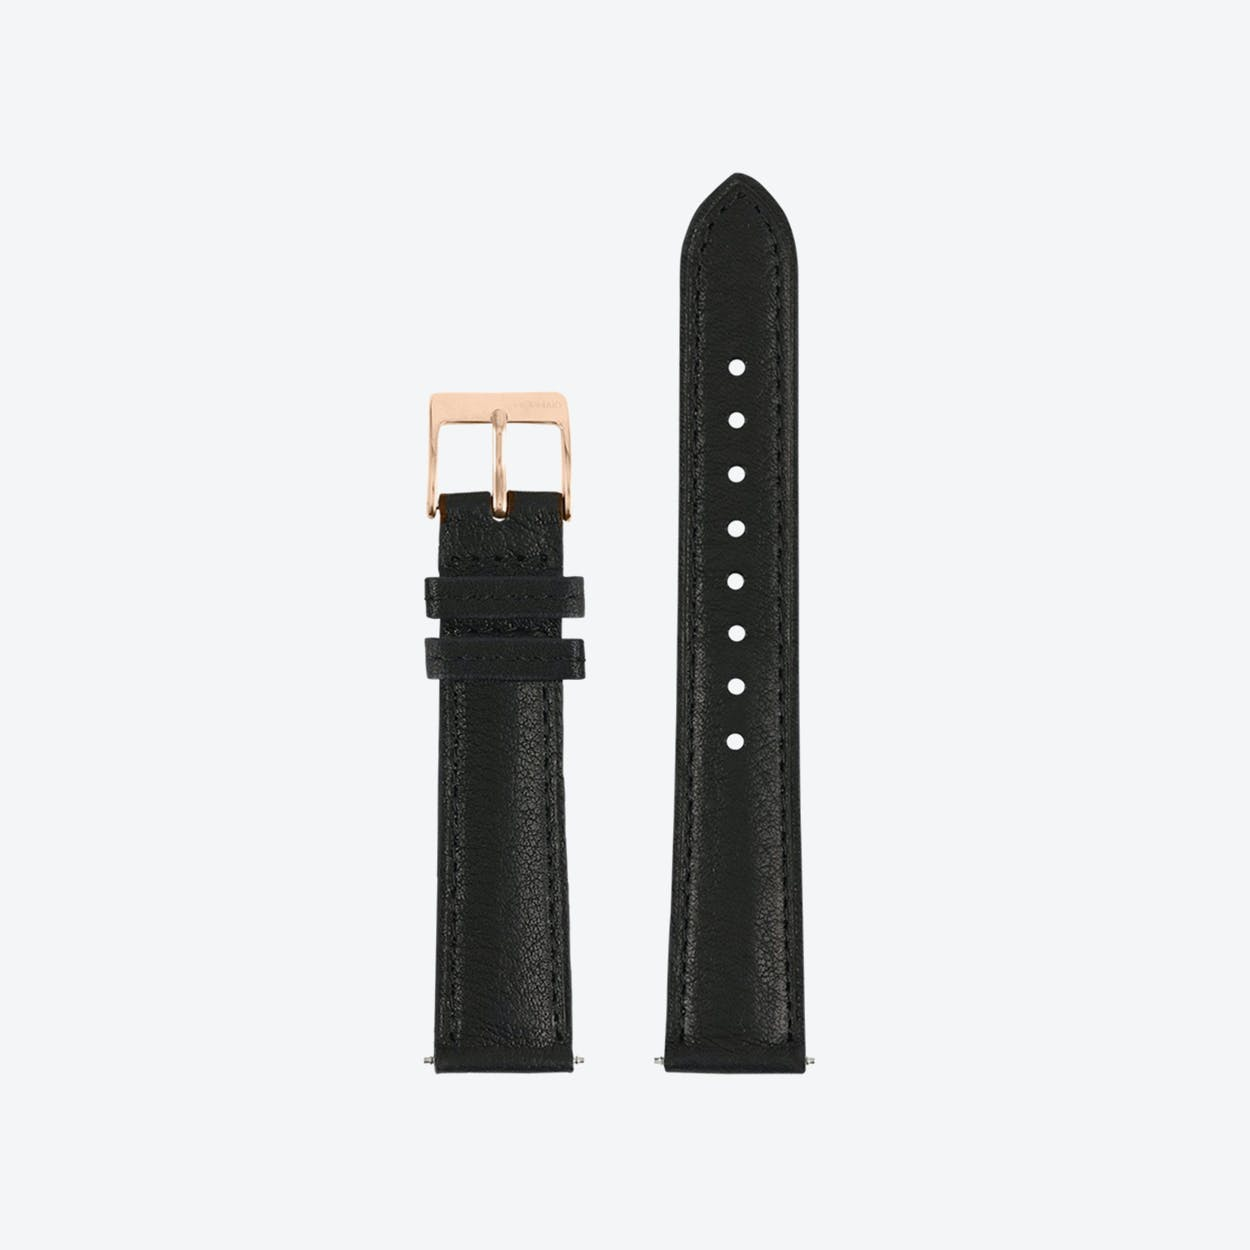 18mm Leather Watch Strap Black/Roségold (With Stitching)